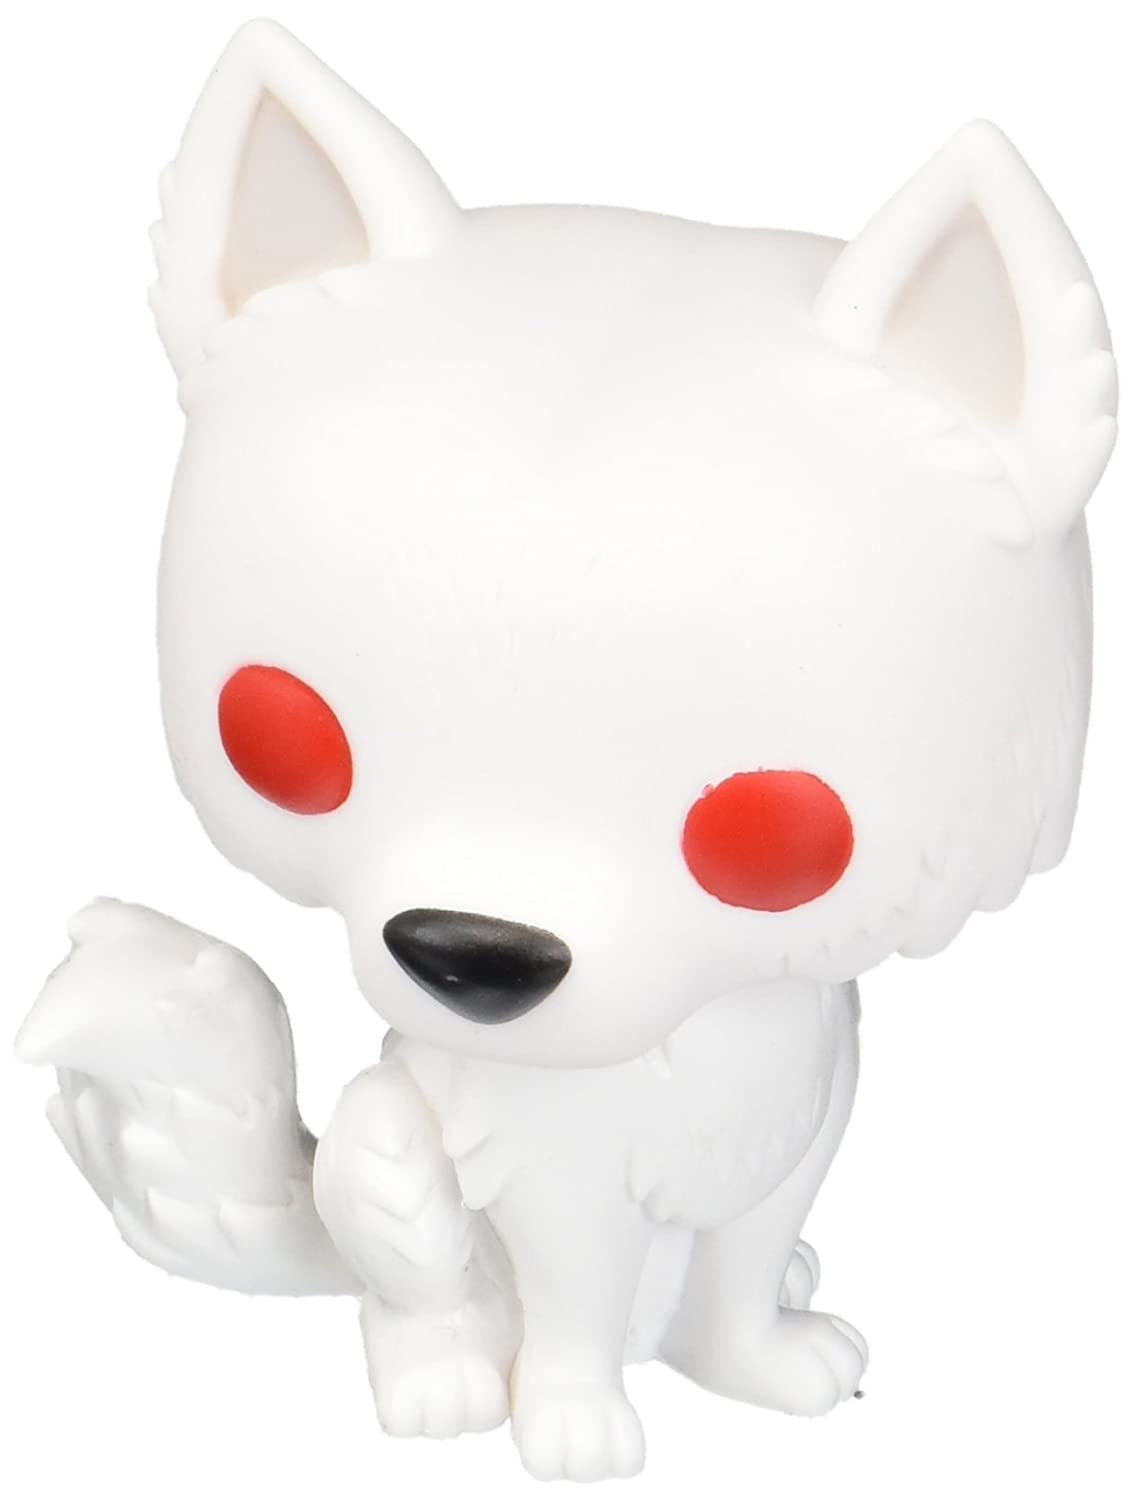 Funko POP Game of Thrones Ghost Vinyl Figure Funko Pop! Television: 3876 Accessory Toys & Games